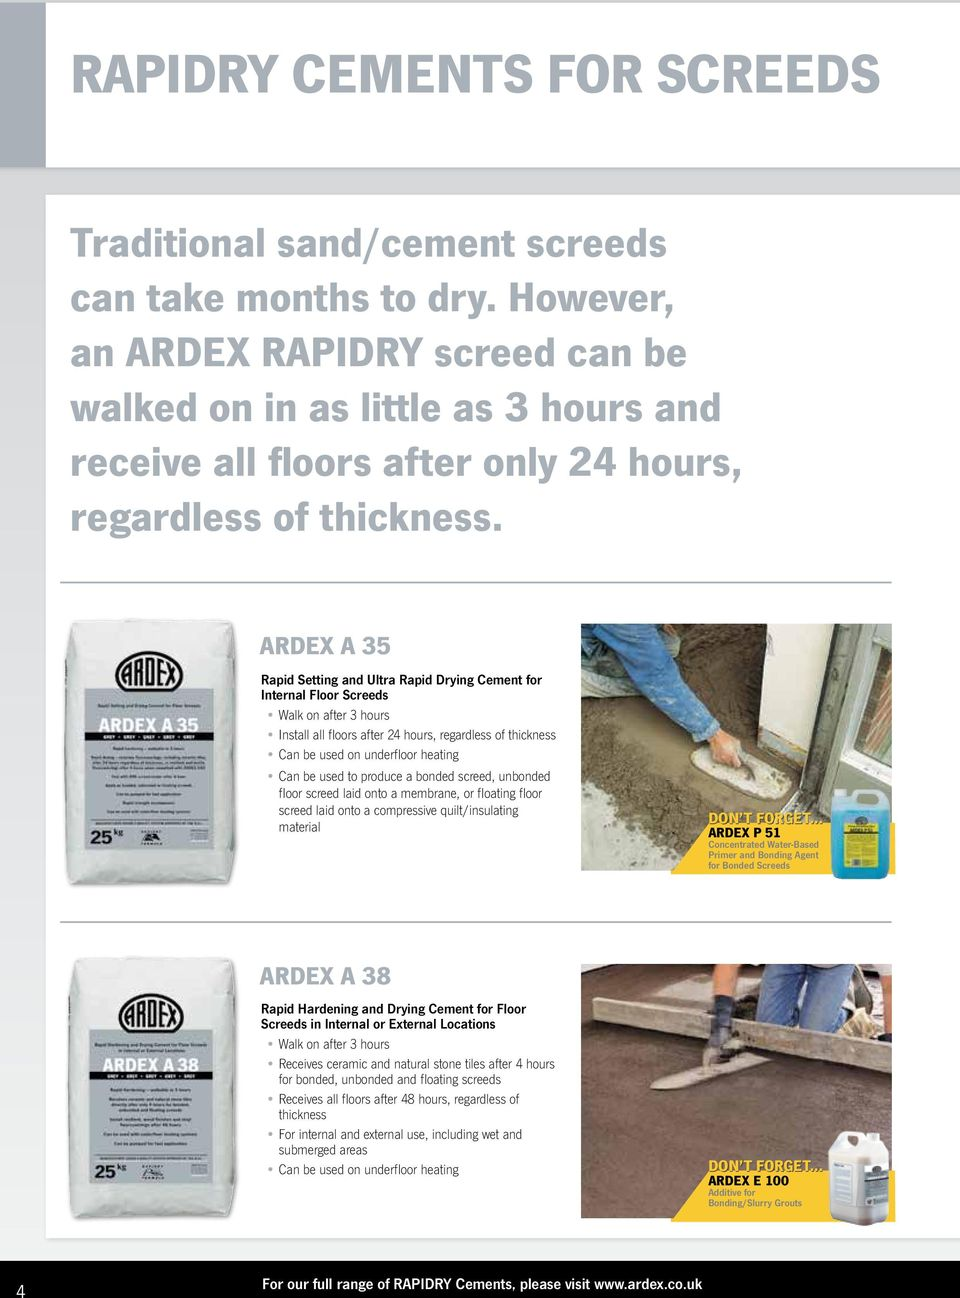 ARDEX A 35 Rapid Setting and Ultra Rapid Drying Cement for Internal Floor Screeds Walk on after 3 hours Install all floors after 24 hours, regardless of thickness Can be used on underfloor heating